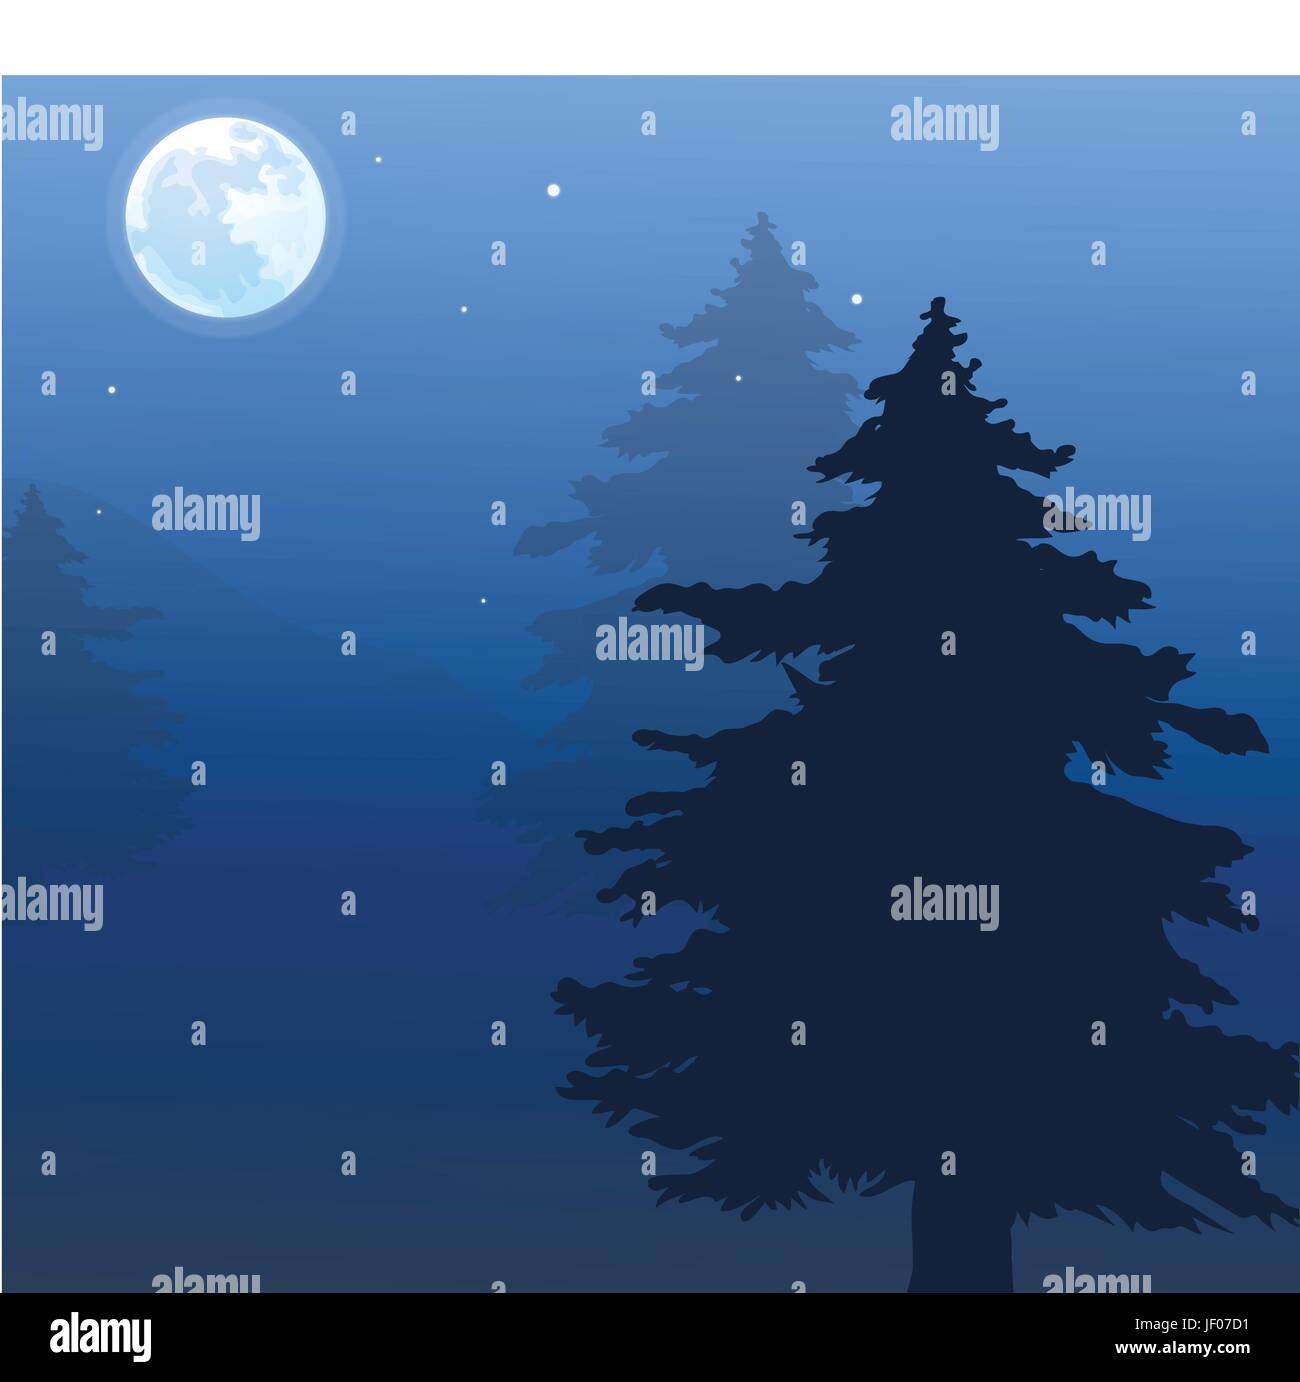 closeup, tree, summer, summerly, moon, fir tree, illustration, square, outdoor, - Stock Vector